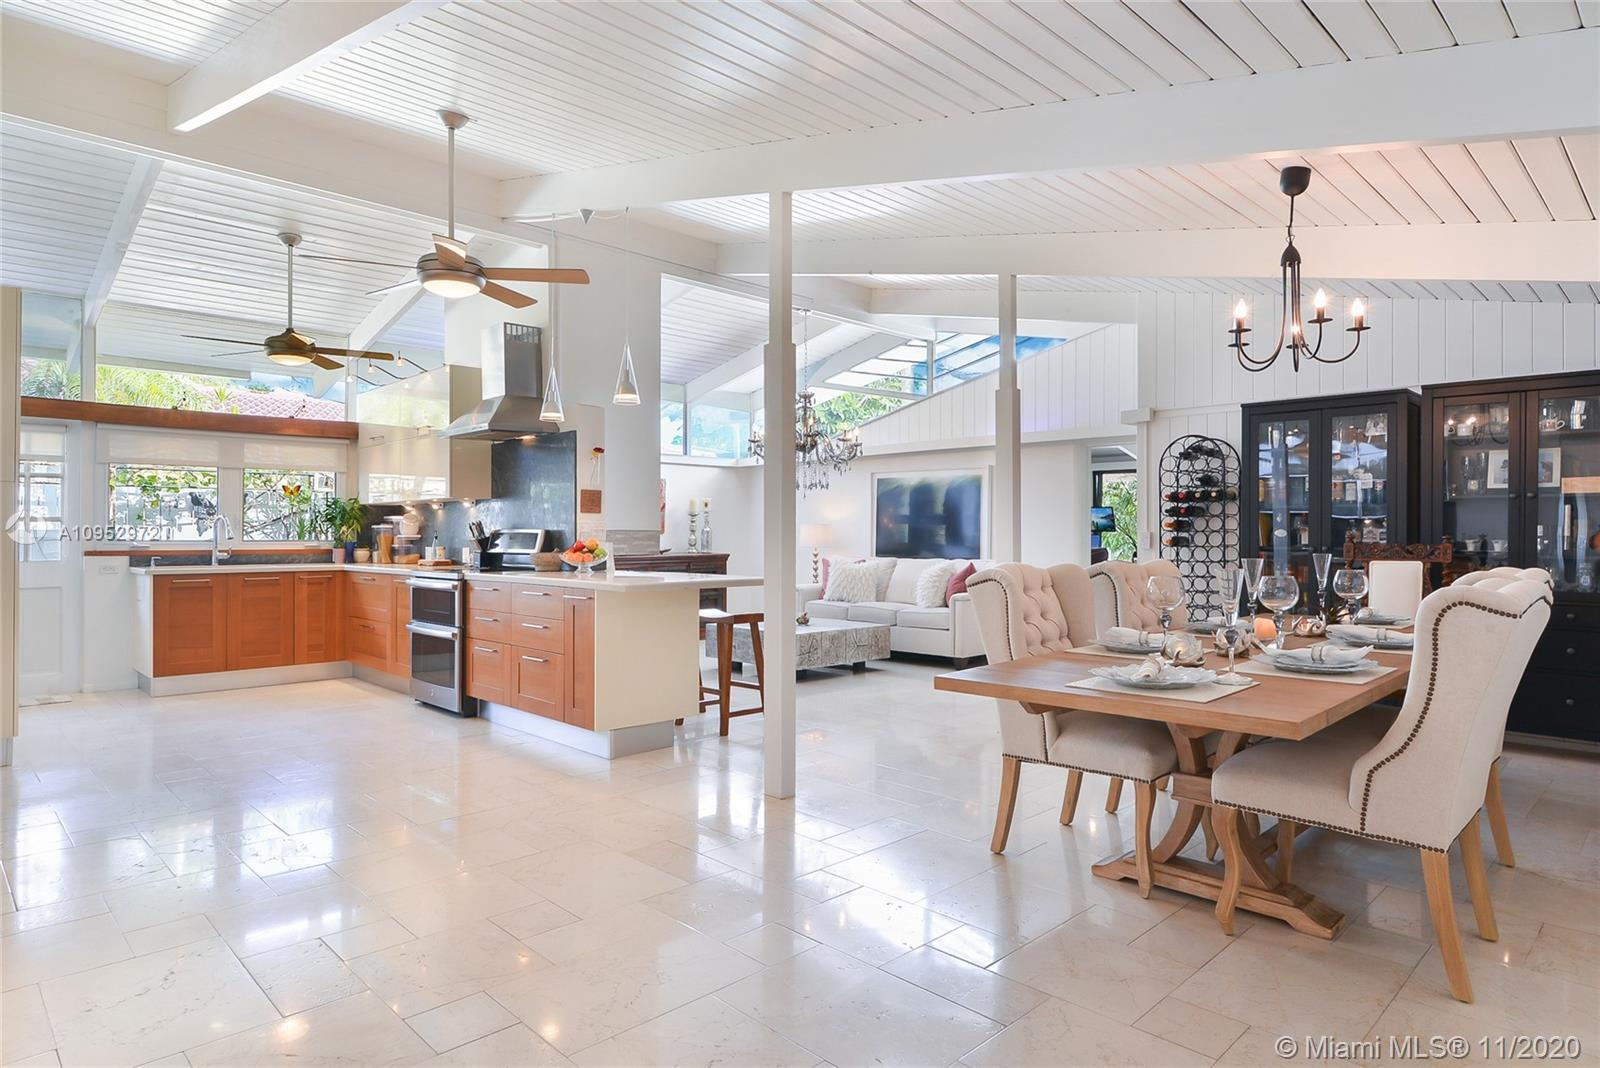 Mid-Century Modern Architecture by Dan Duckham w/amazing space and style. This large home is perfect